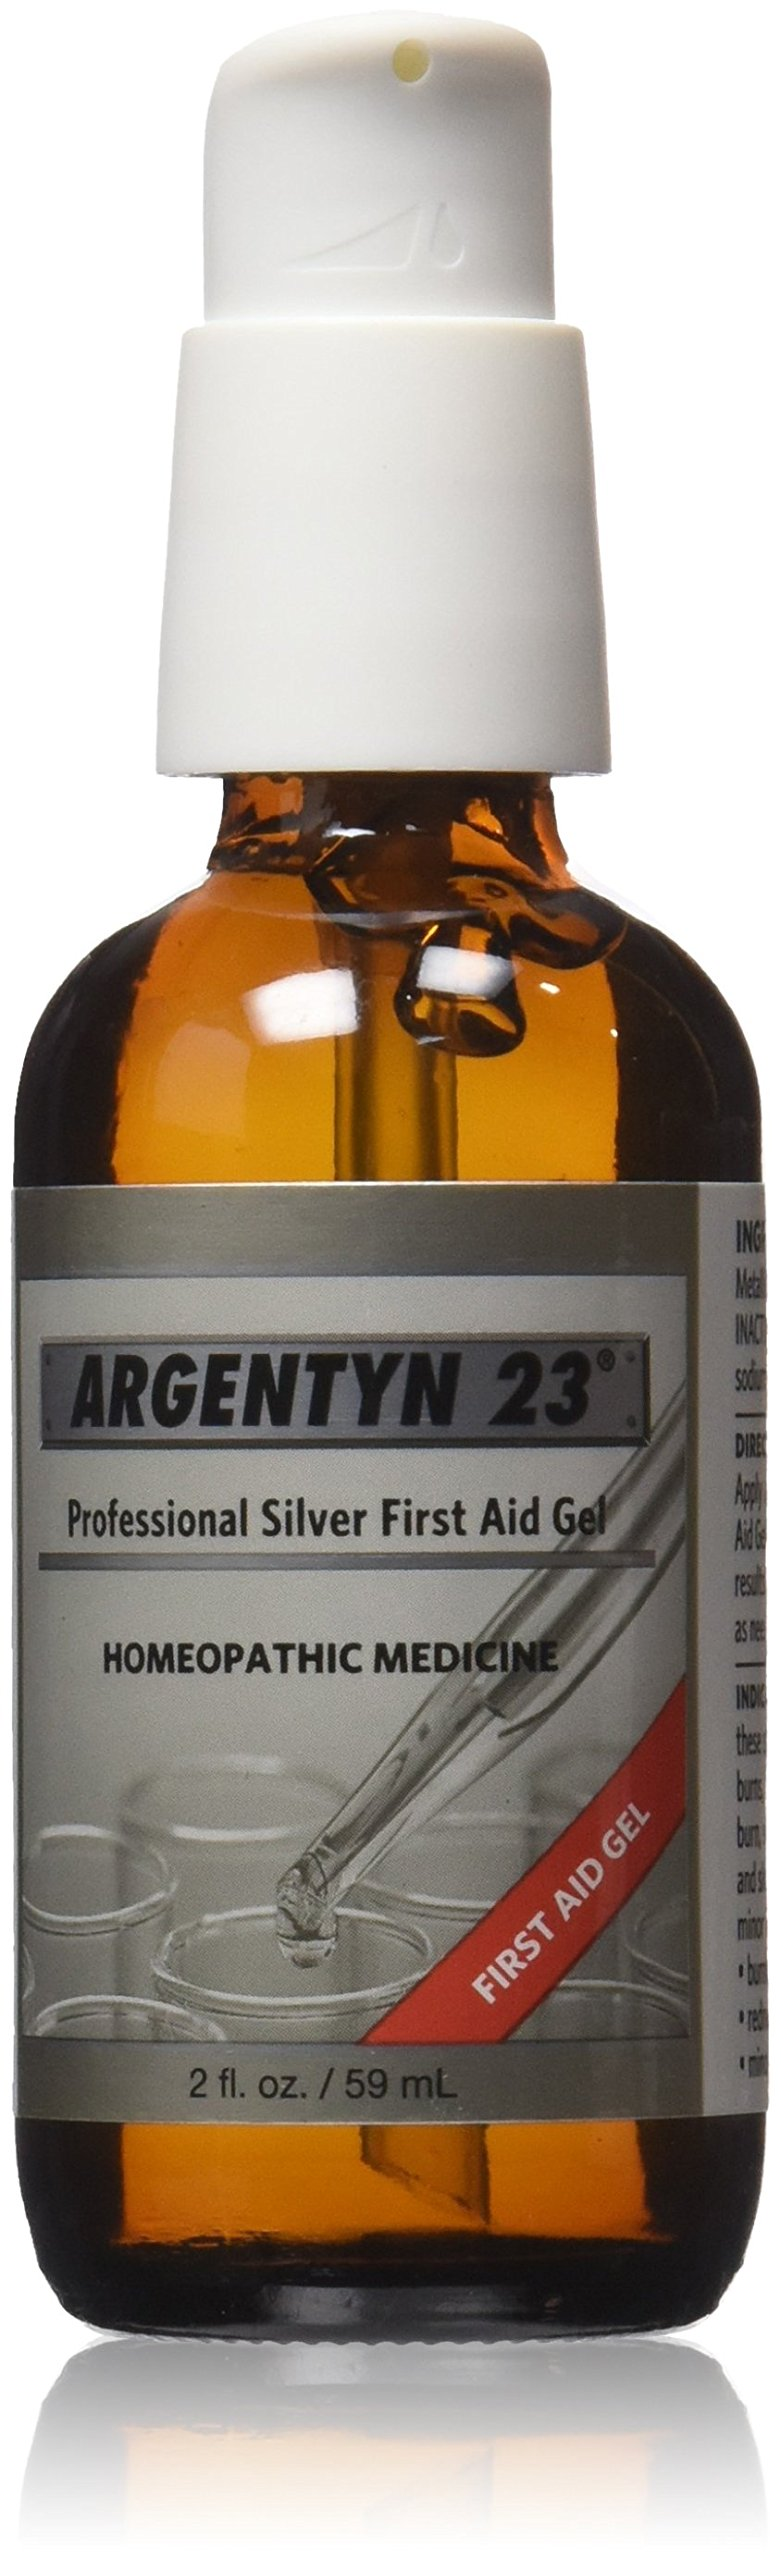 Argentyn 23 Professional Silver First Aid Gel -- 2 fl oz